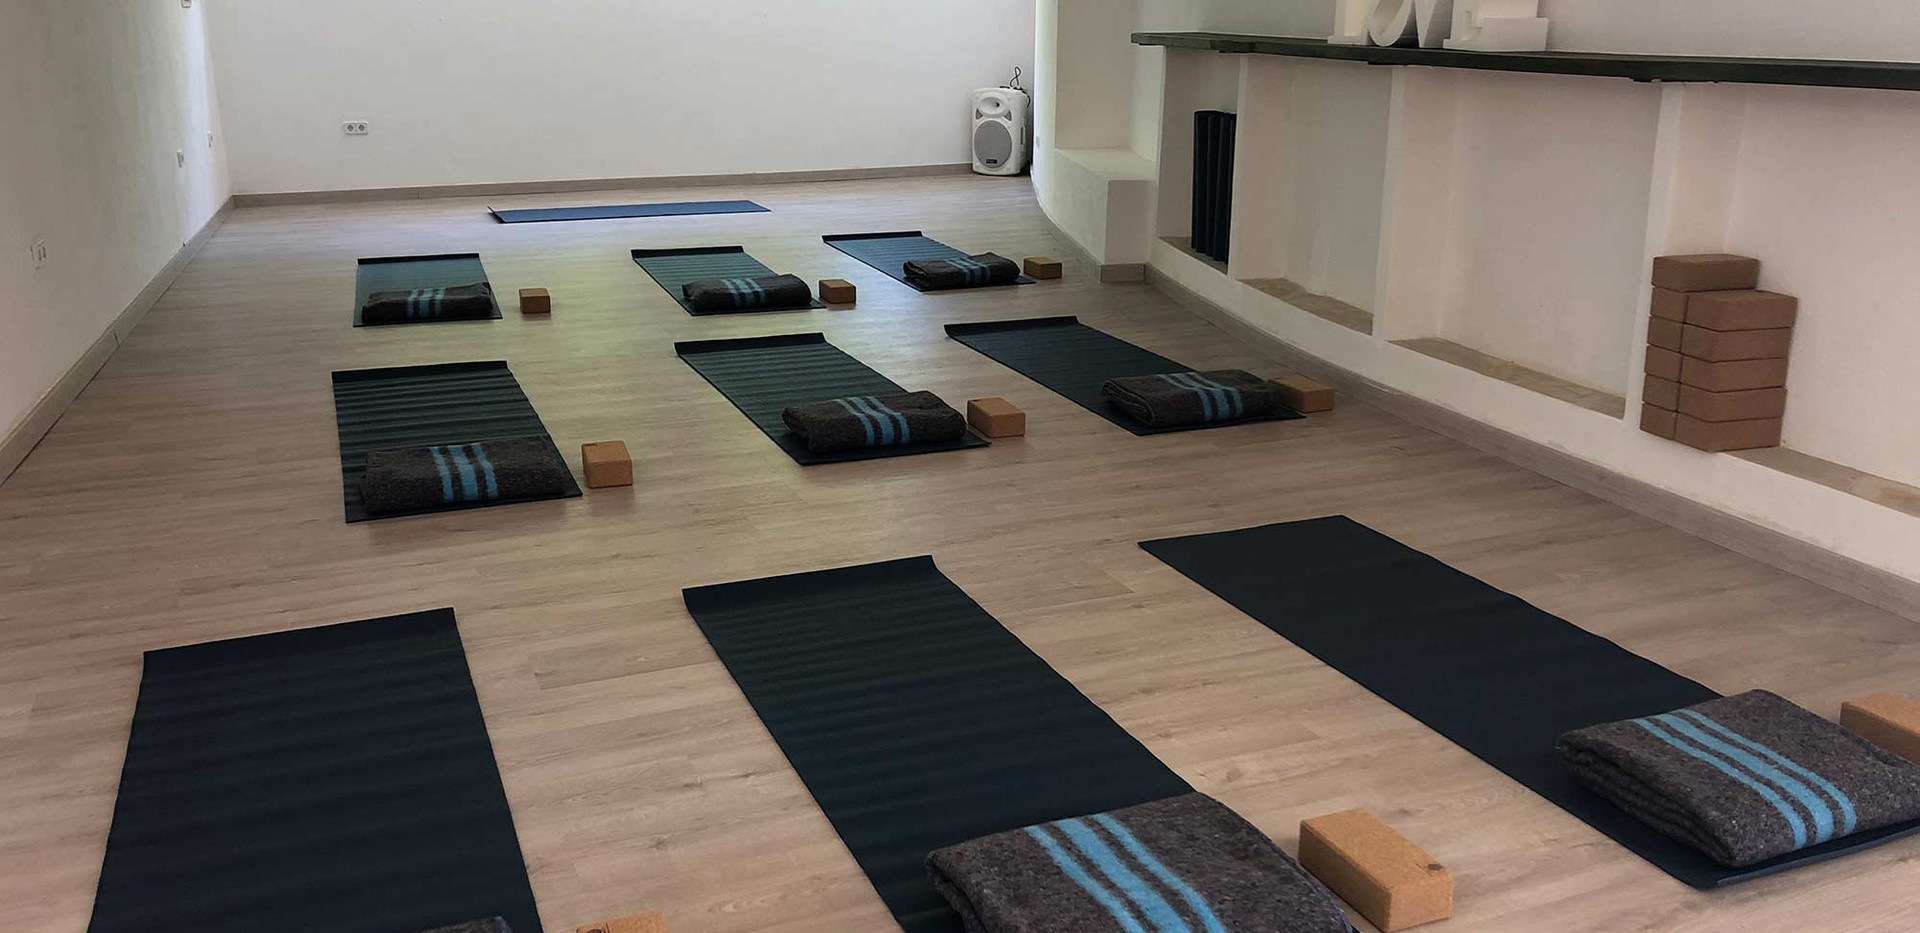 Ashram Ibiza - Yoga & Meditation Center